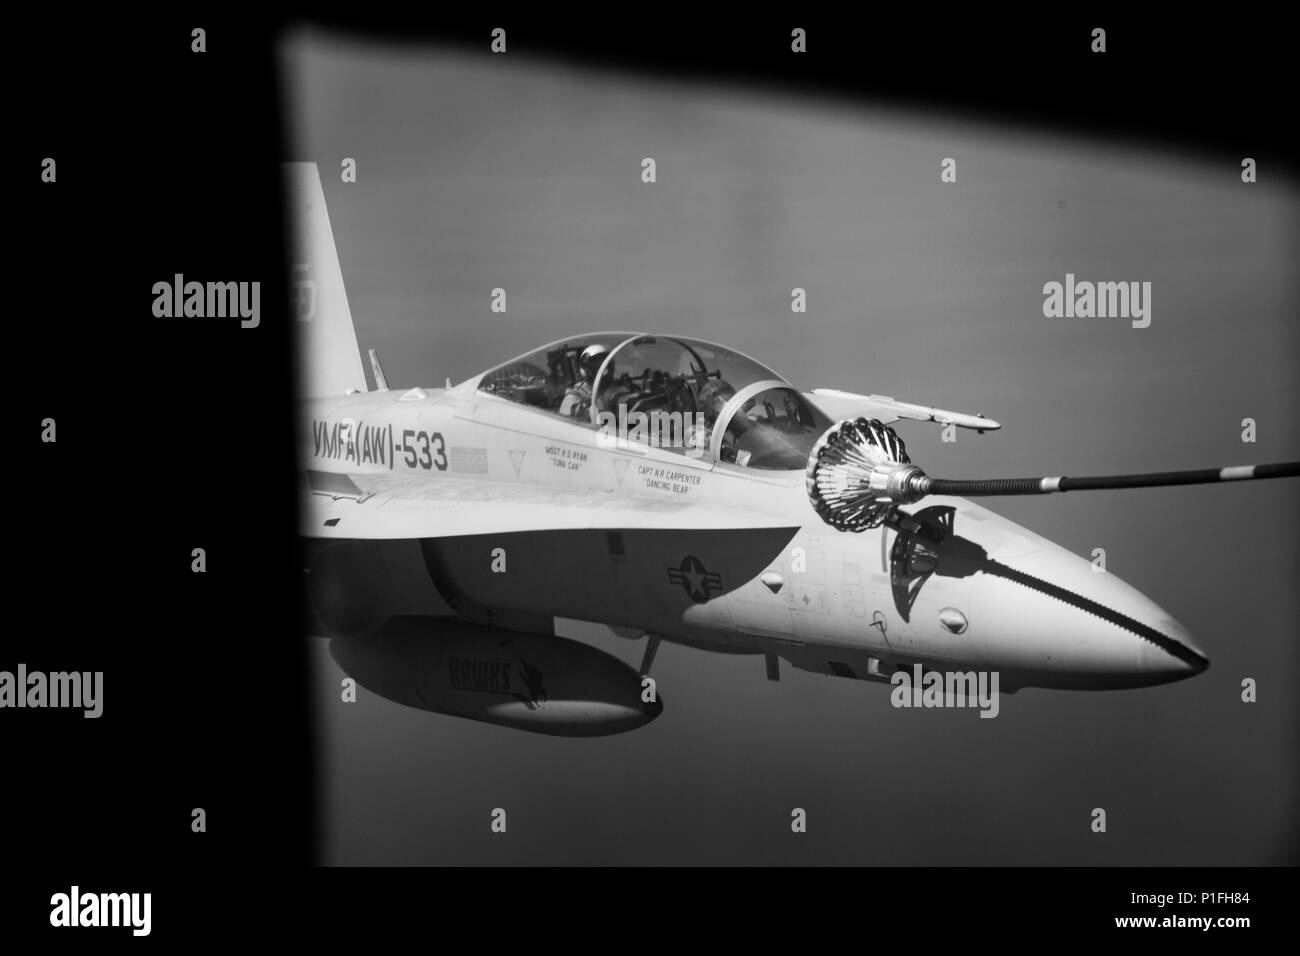 Cr Black and White Stock Photos & Images - Alamy